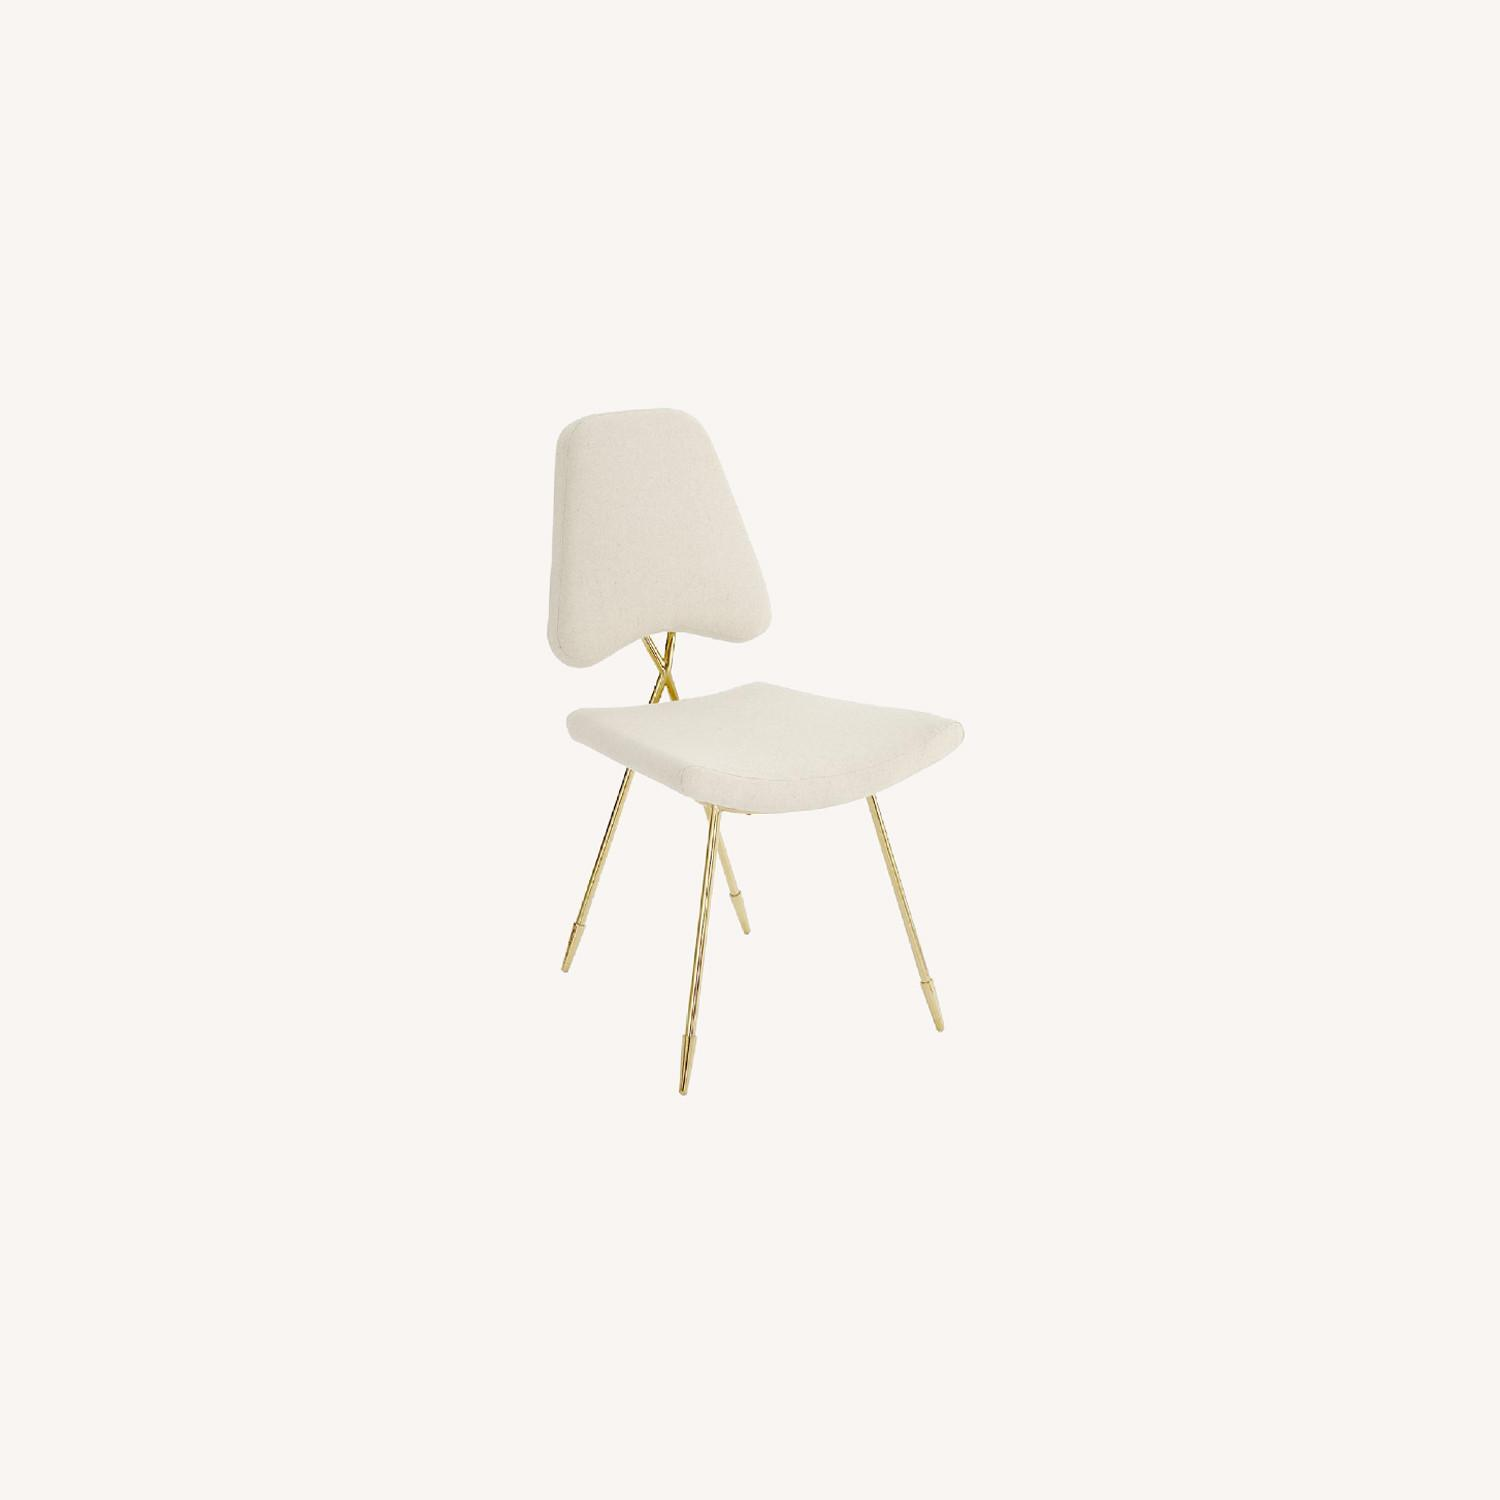 Jonathan Adler Maxime Dining Chairs - image-0